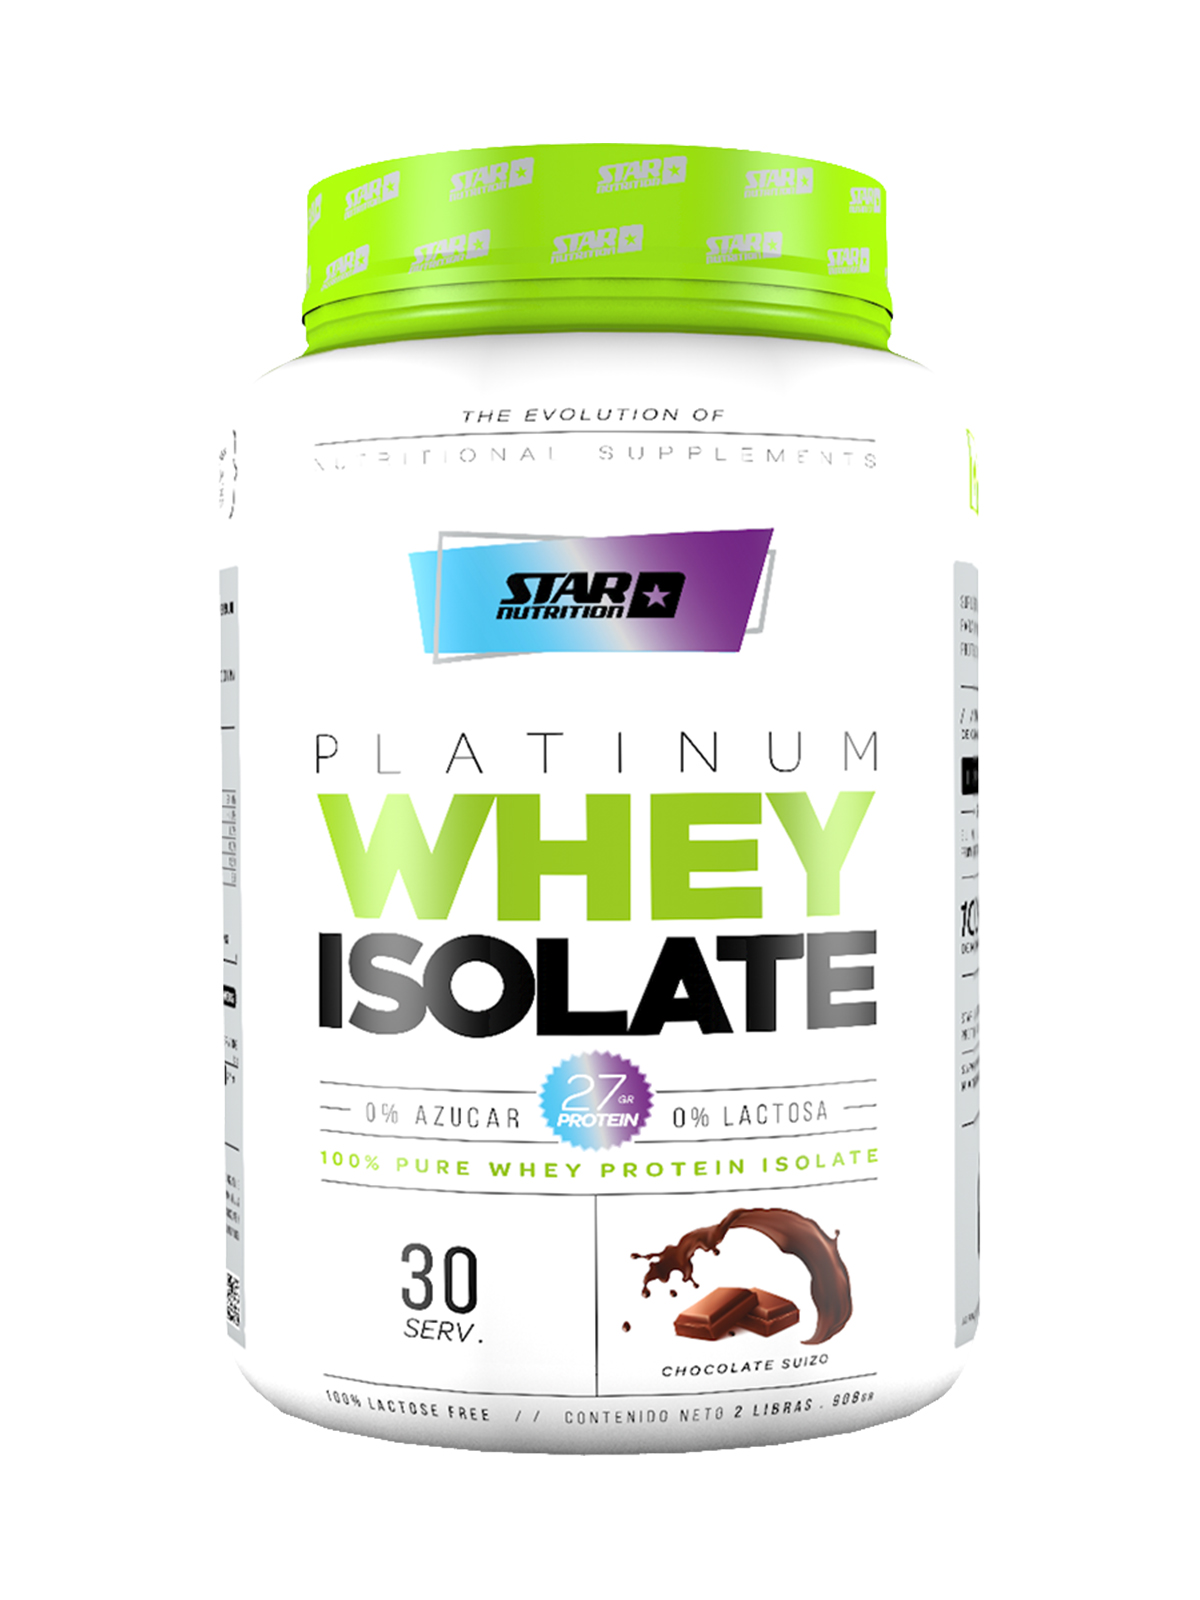 PLATINUM WHEY ISOLATE